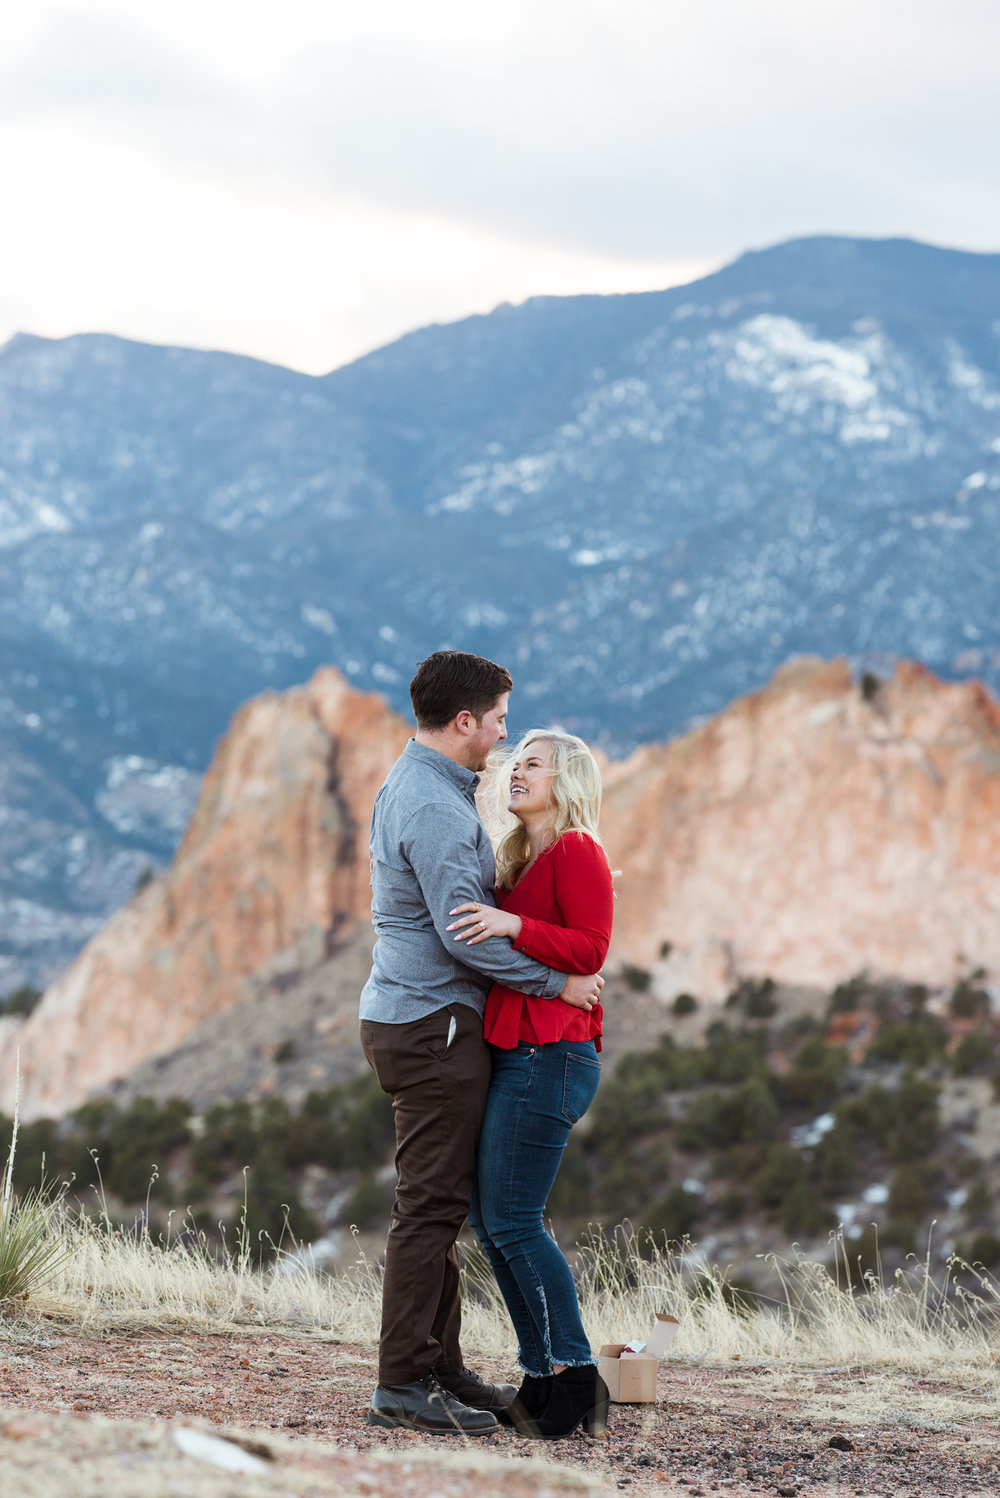 Check out this surprise Colorado Springs proposal photoshoot. She said yes!